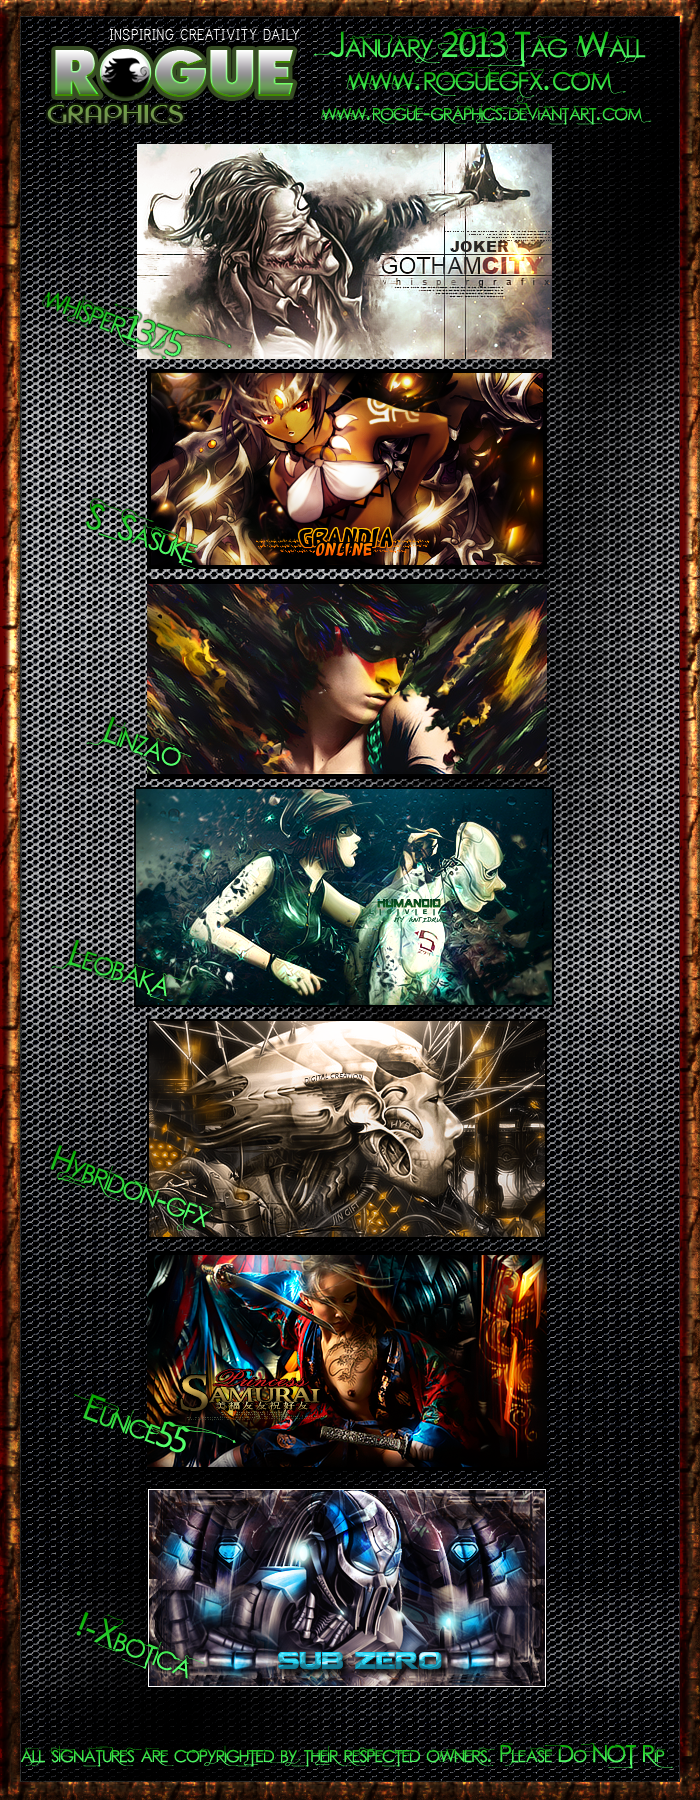 R*Gfx January 2013 Featured Tag Wall Rogue_graphics_january_2013_tagwall_by_xkeepher-d5up23h